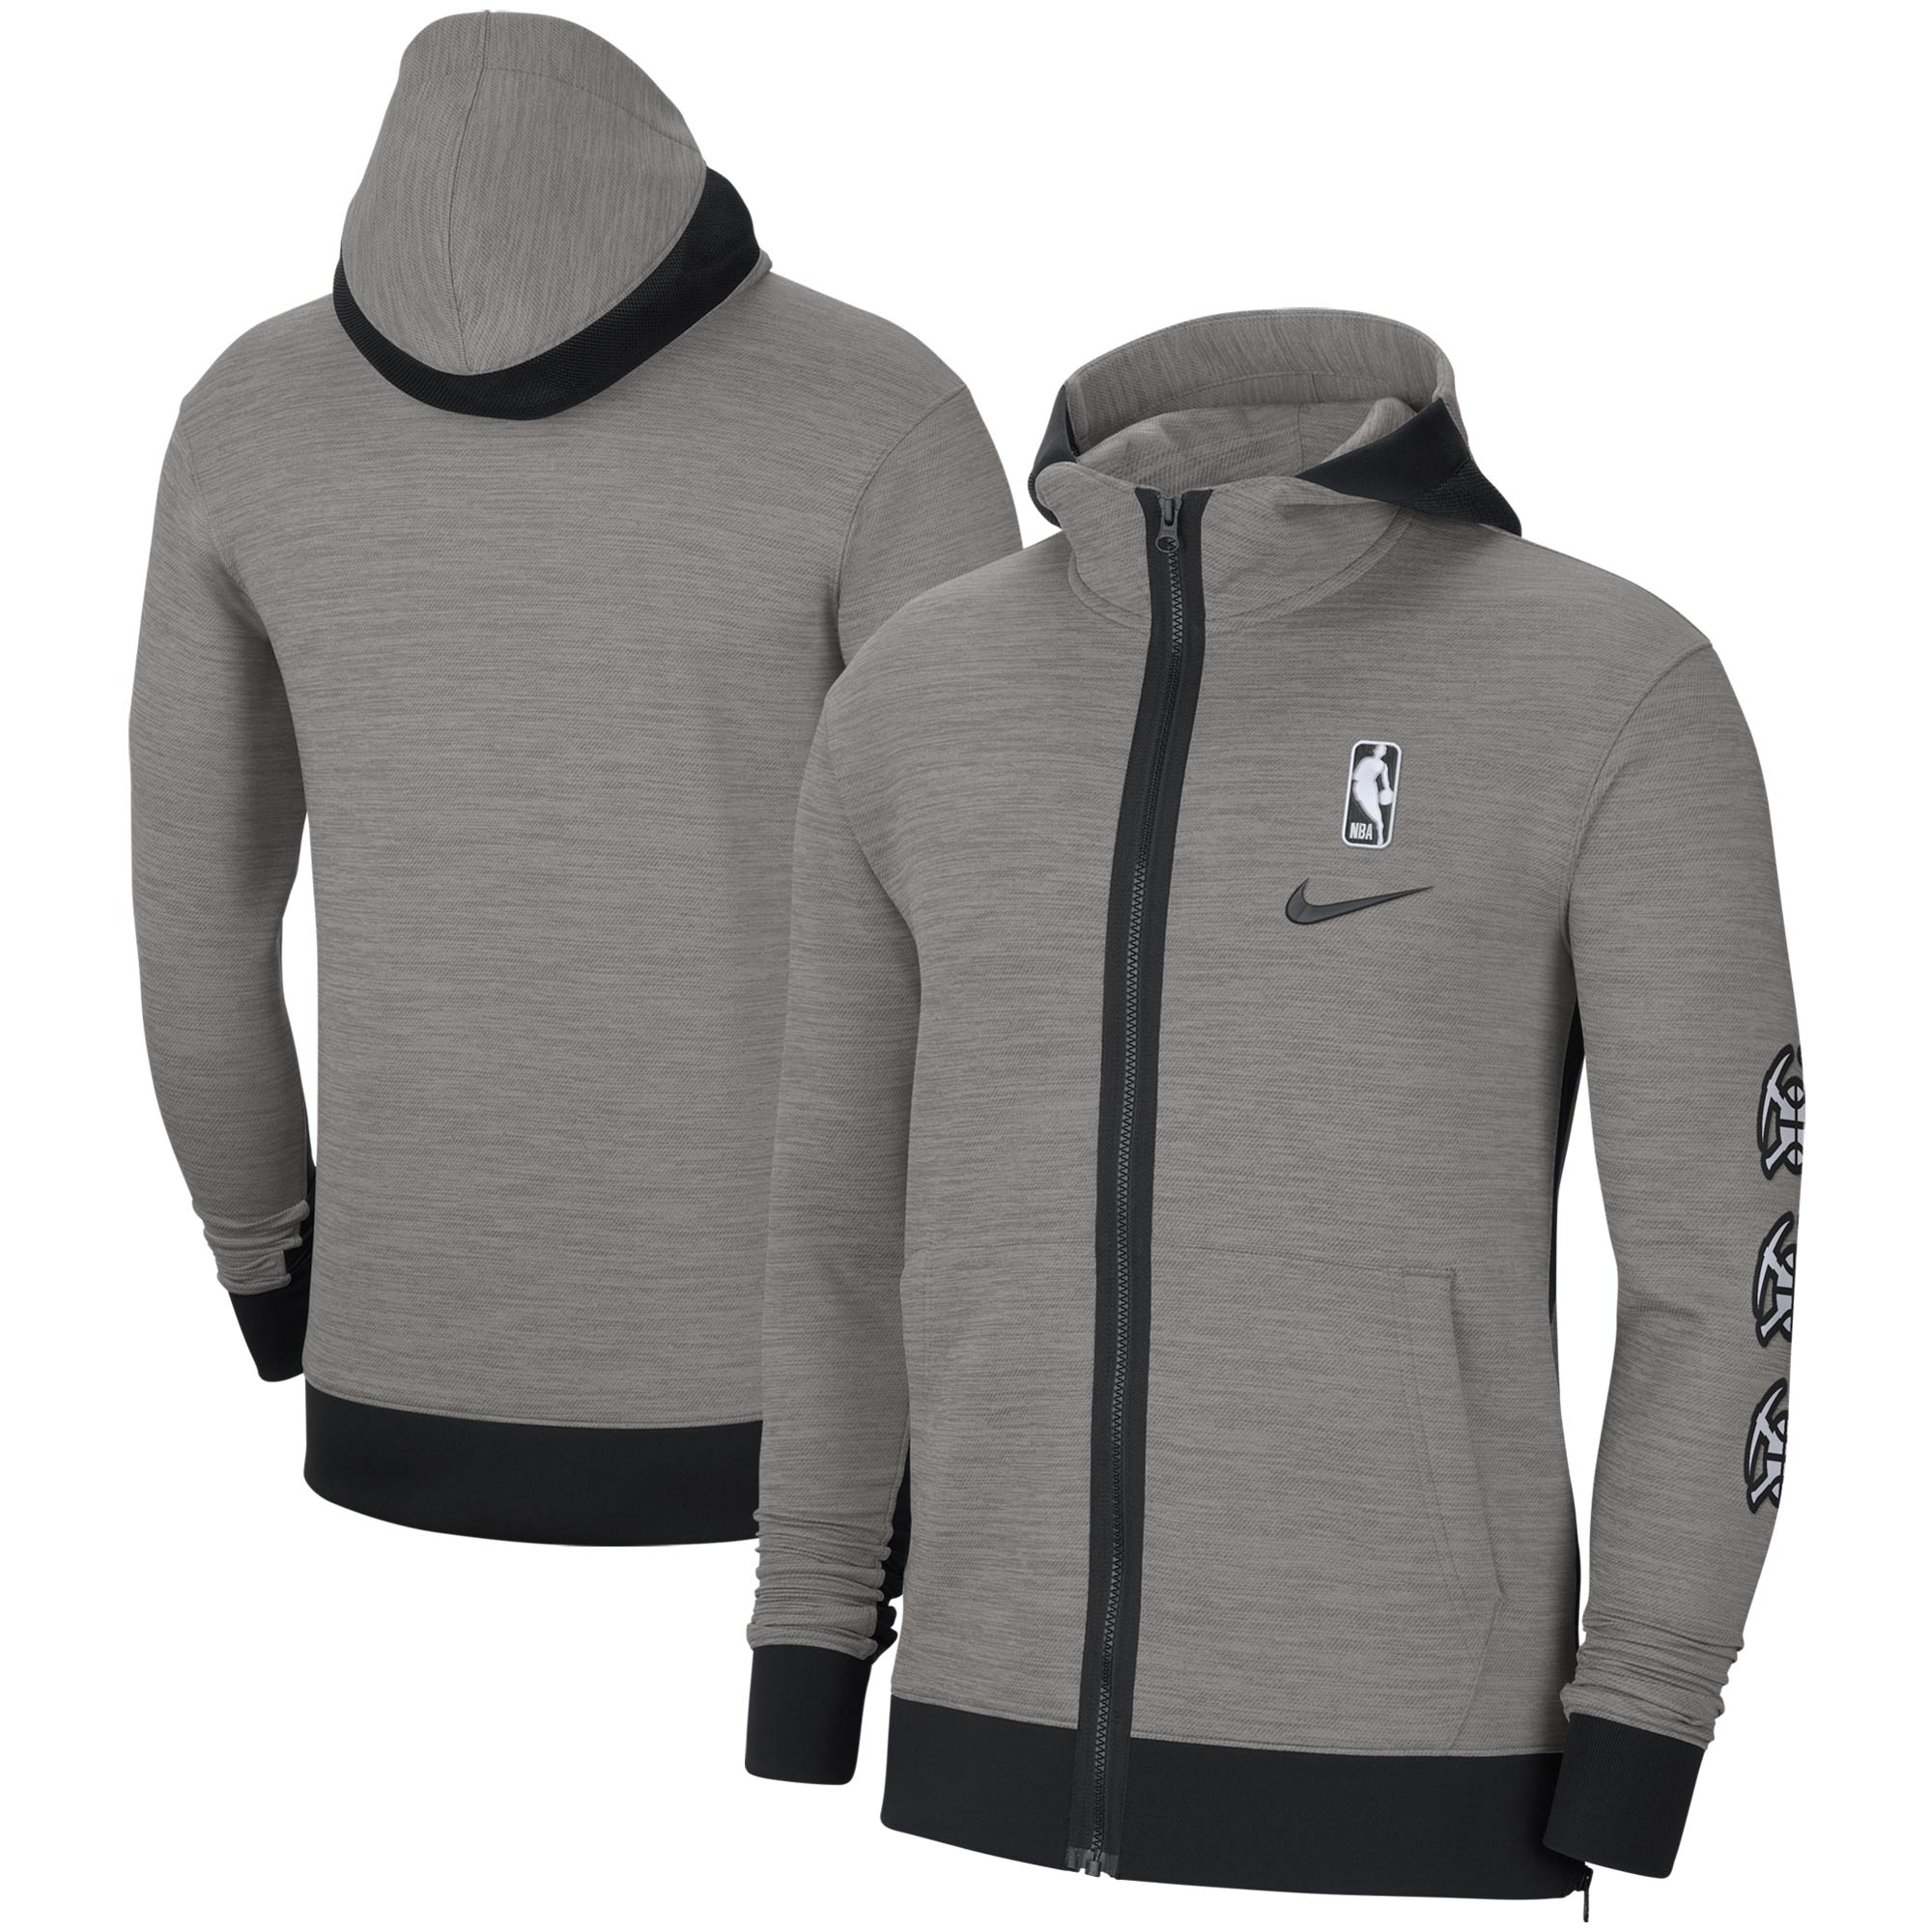 Denver Nuggets Nike Authentic Showtime Performance Full-Zip Hoodie Jacket - Heathered Charcoal